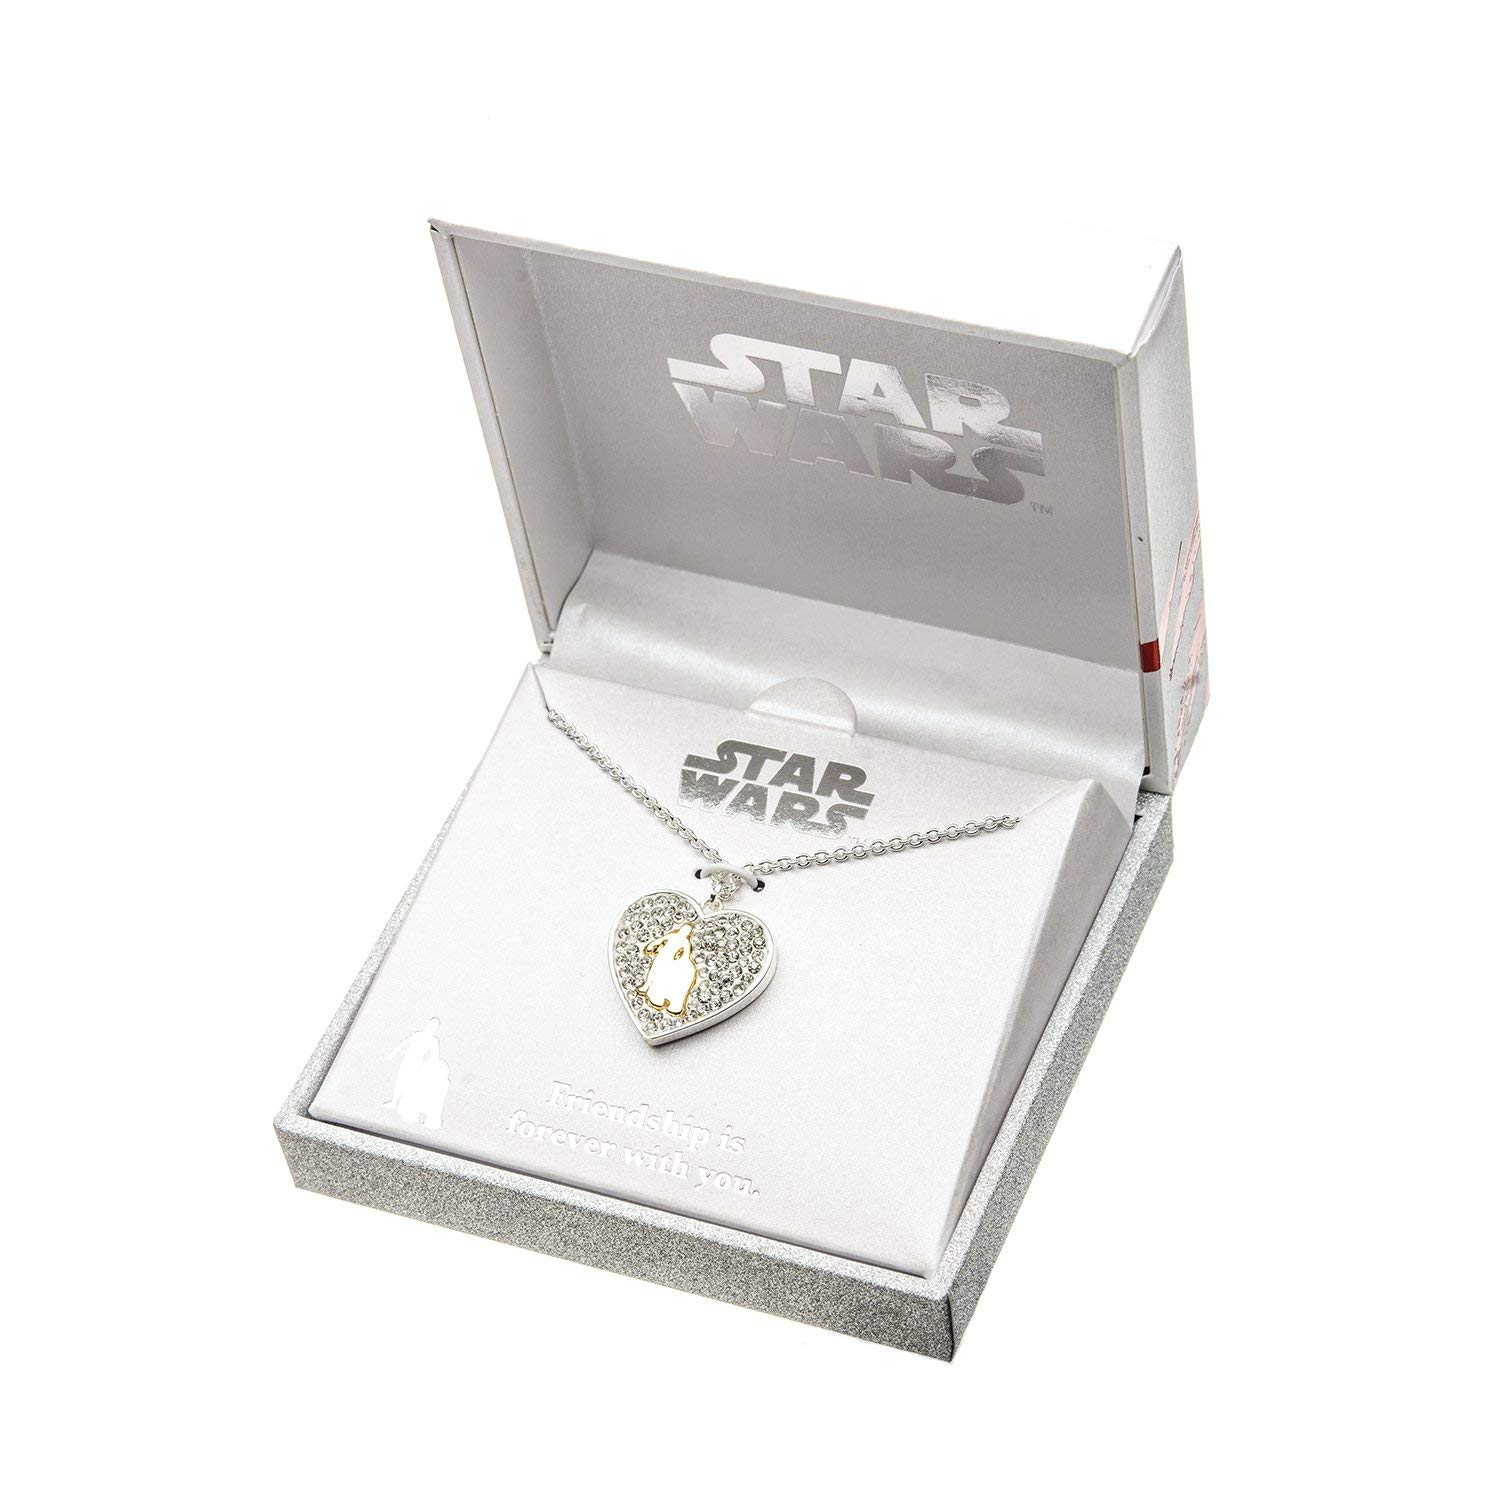 Body Vibe x Star Wars C-3PO and R2-D2 Rhinestone Heart Necklace on Amazon